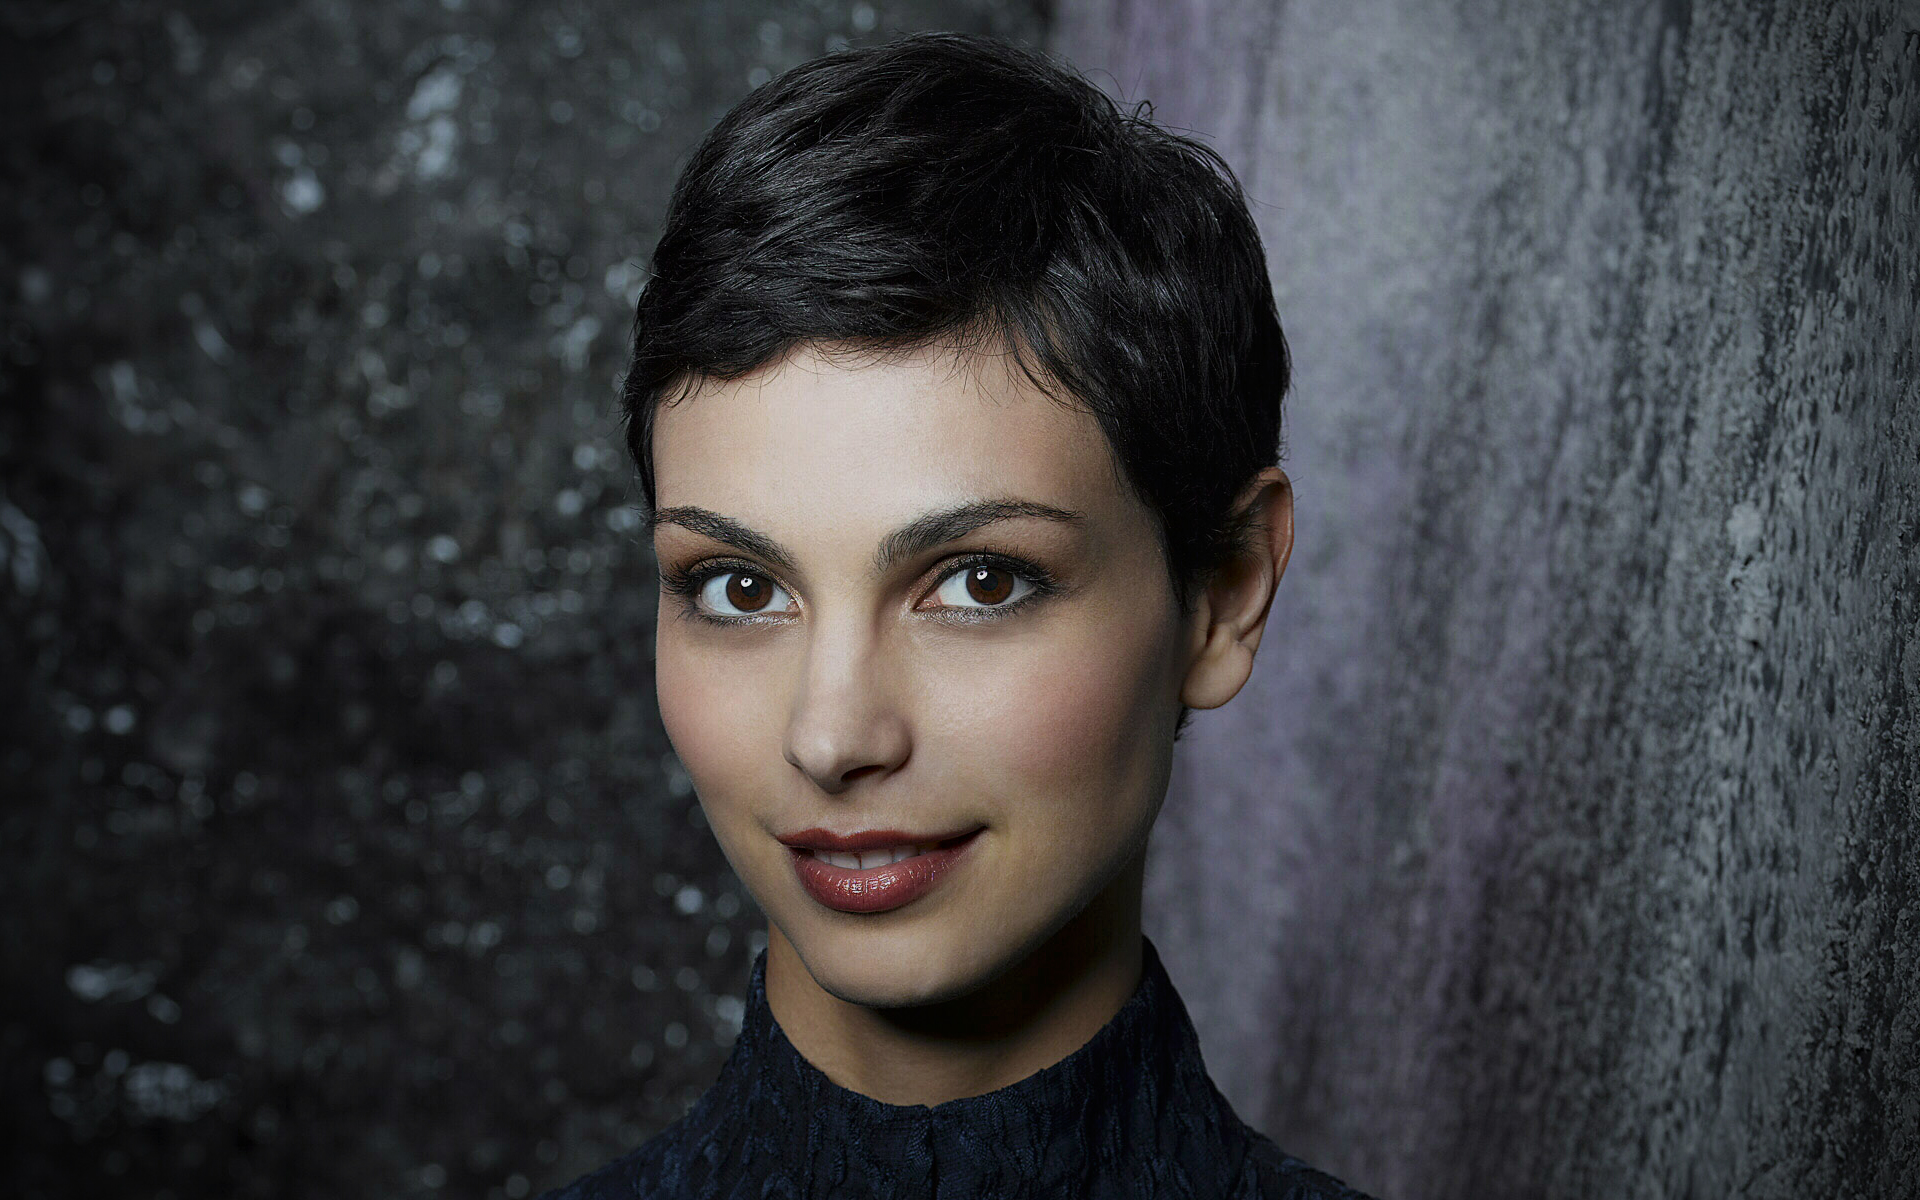 1920x1200 - Morena Baccarin Wallpapers 22